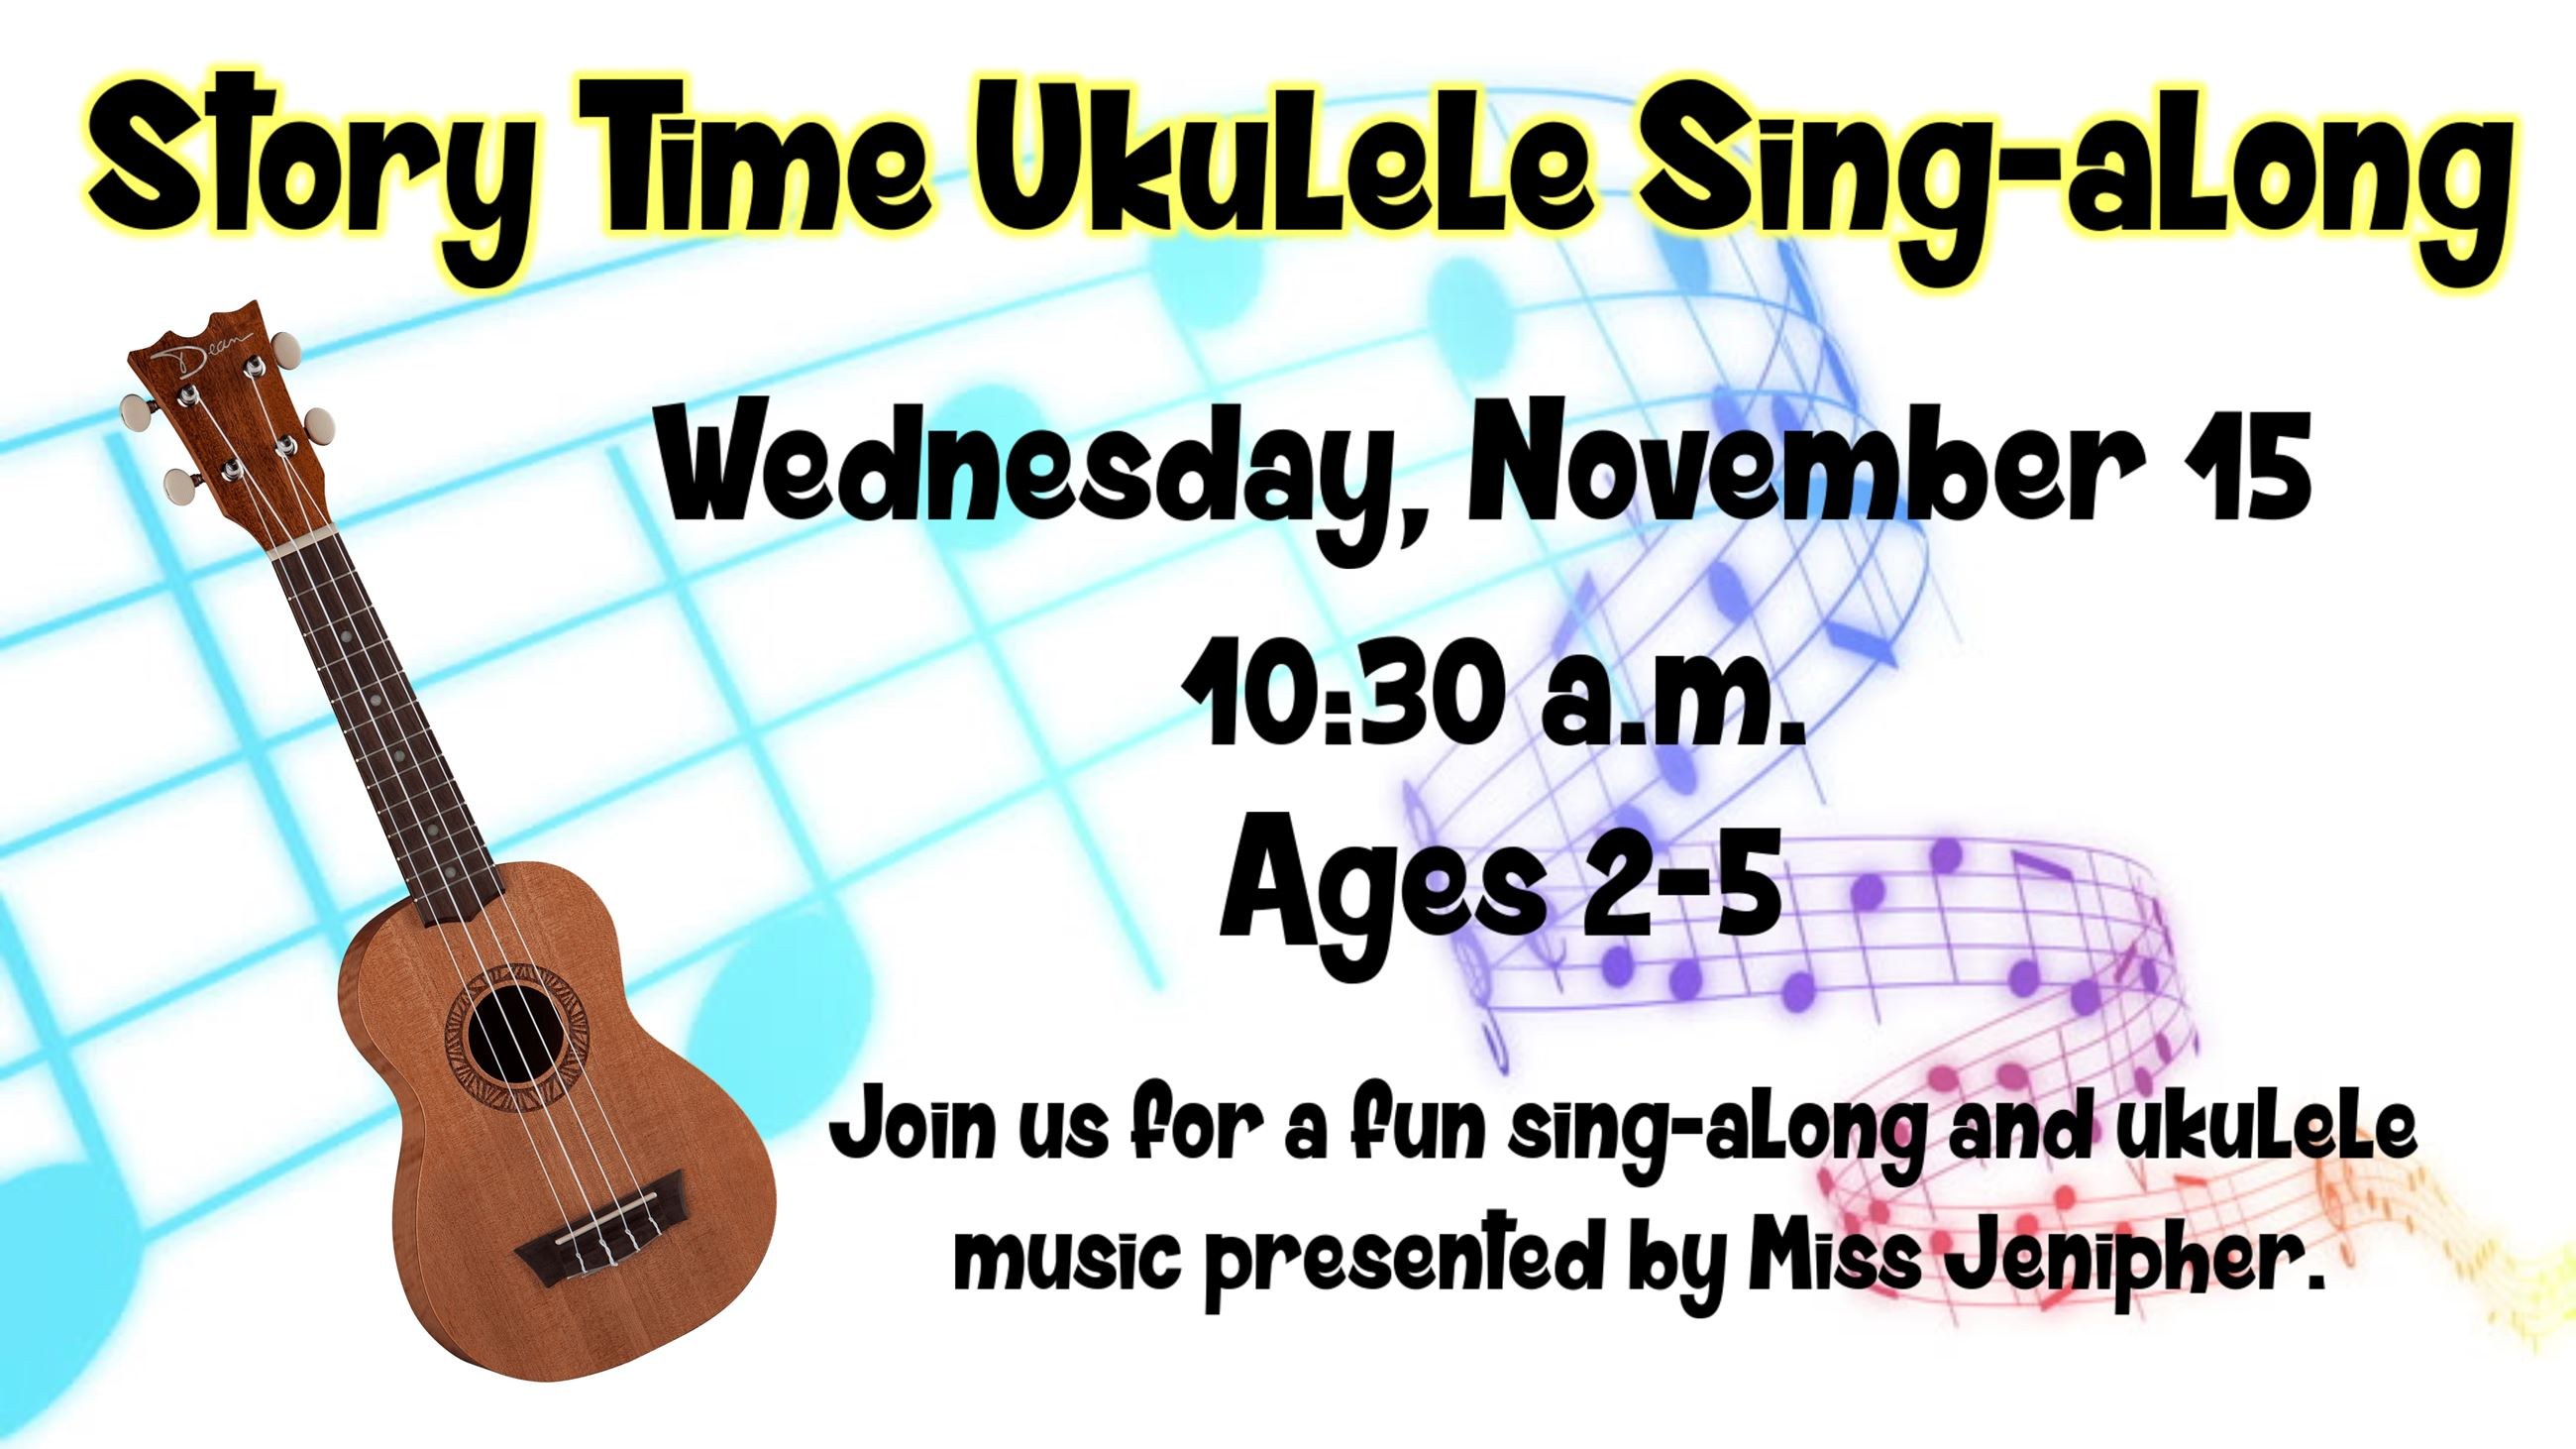 Story Time Ukulele Sing-along